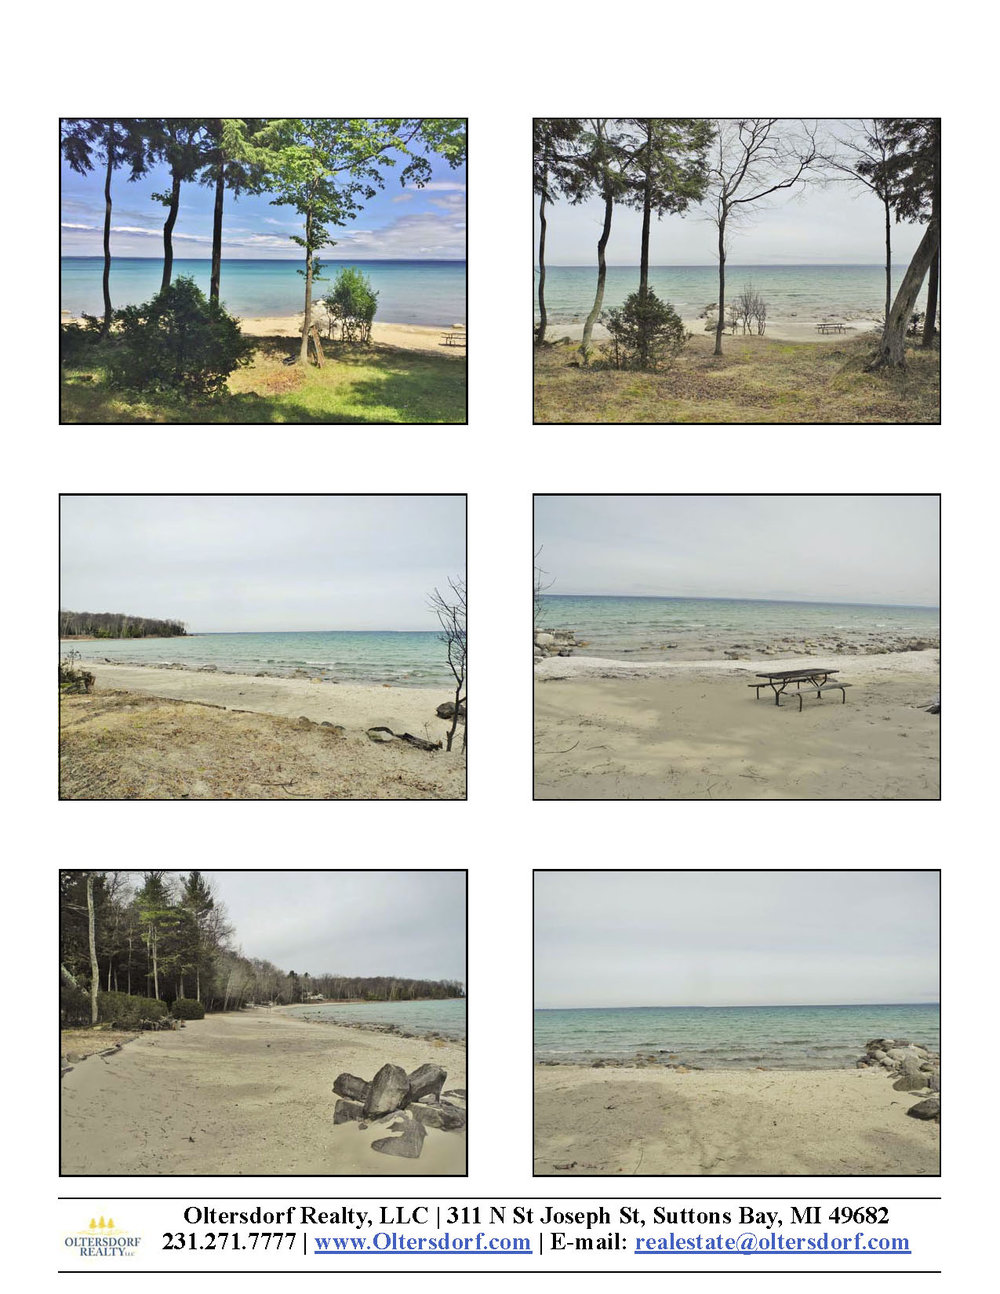 5290 N Omena Point Road, Omena, MI – 100' of Private Frontage on Grand Traverse Bay for sale by Oltersdorf Realty LLC (2) - Marketing Packet.jpg